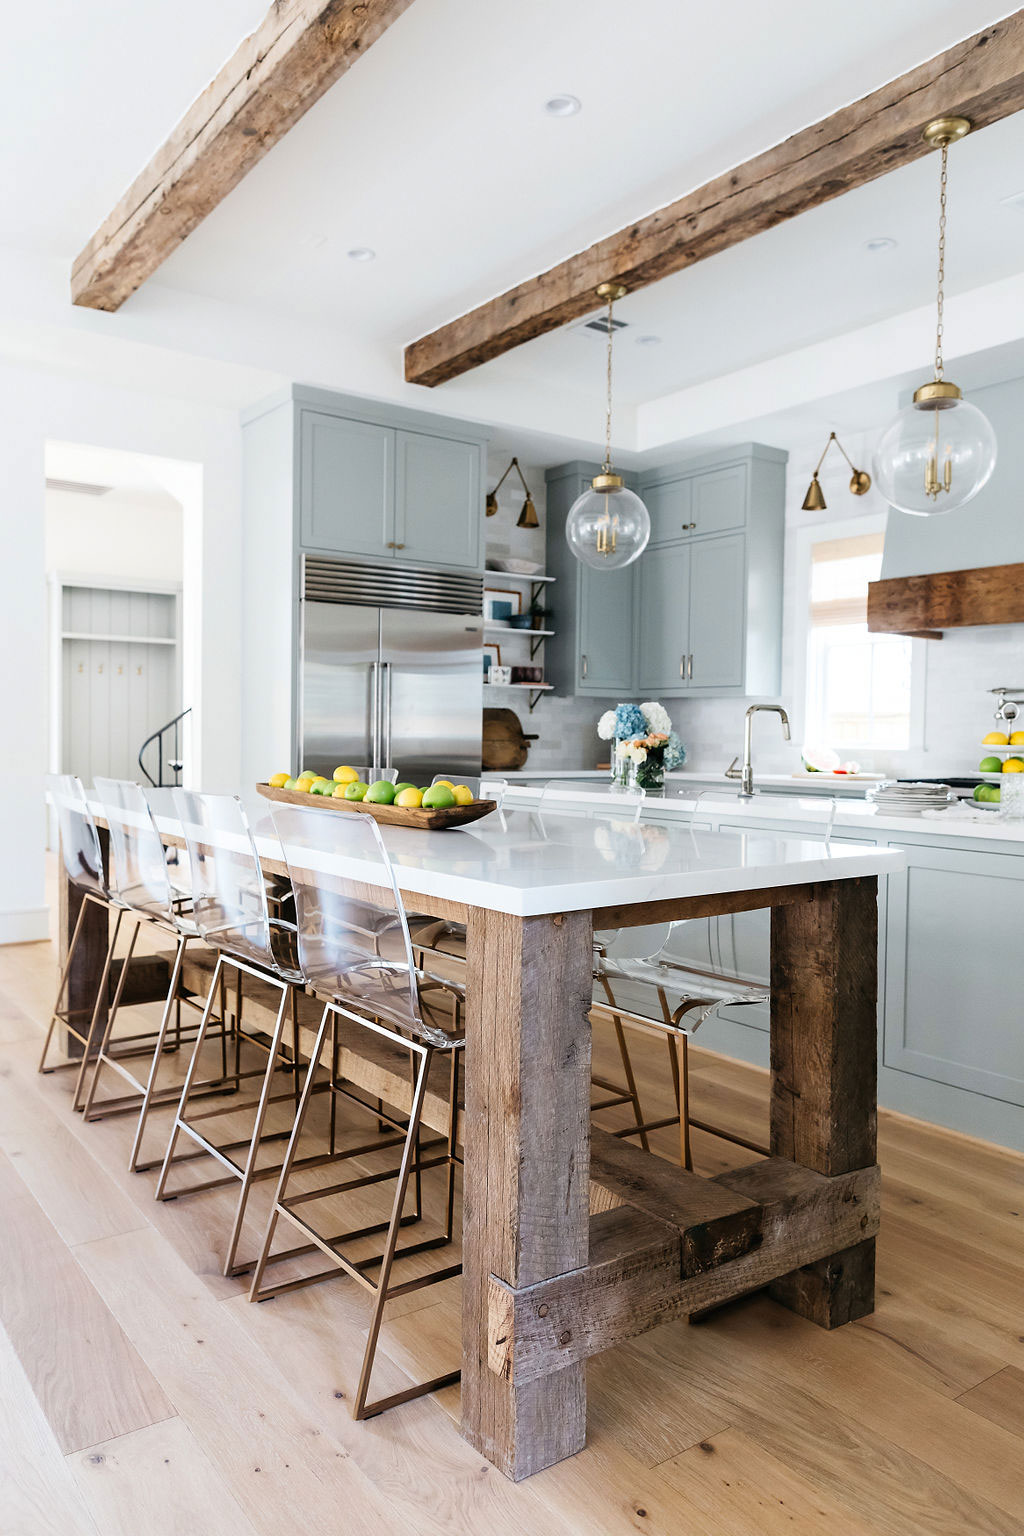 Rustic Kitchen with Exposed Beams Cabinets in Magnetic Gray by Sherwin Williams